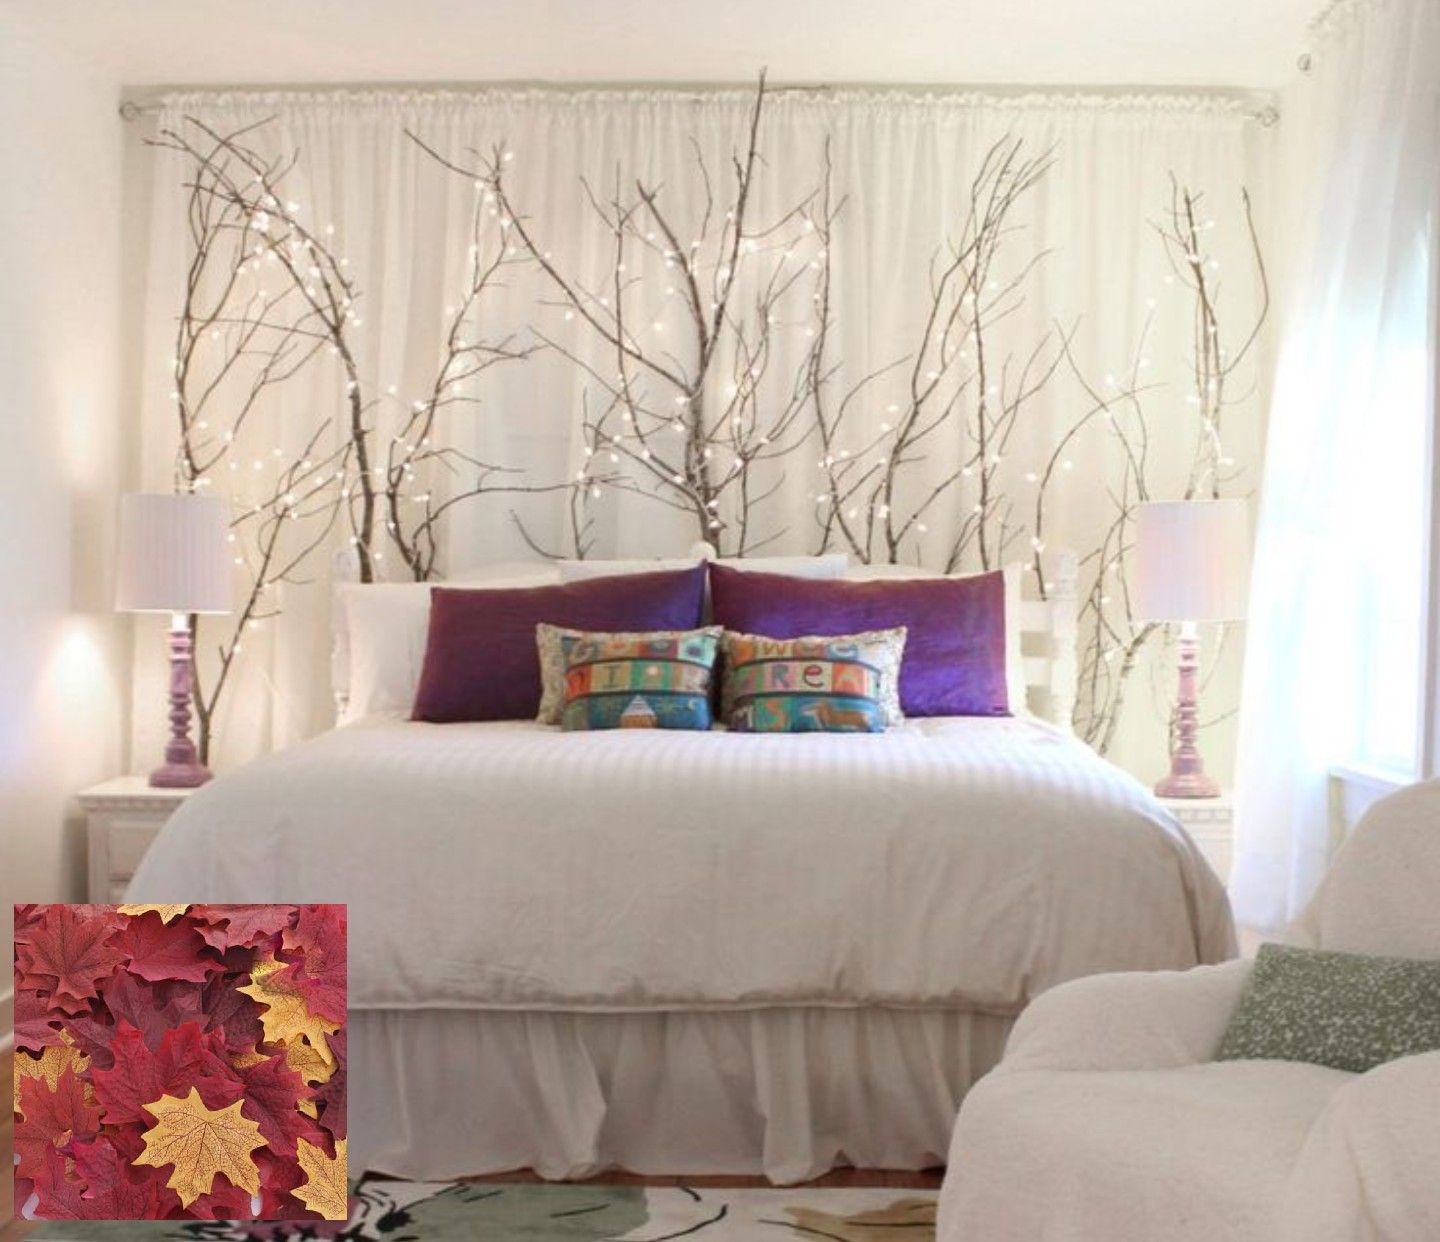 Bedroom with window over bed  tree branches with fairy lights and maple leaves behind bed